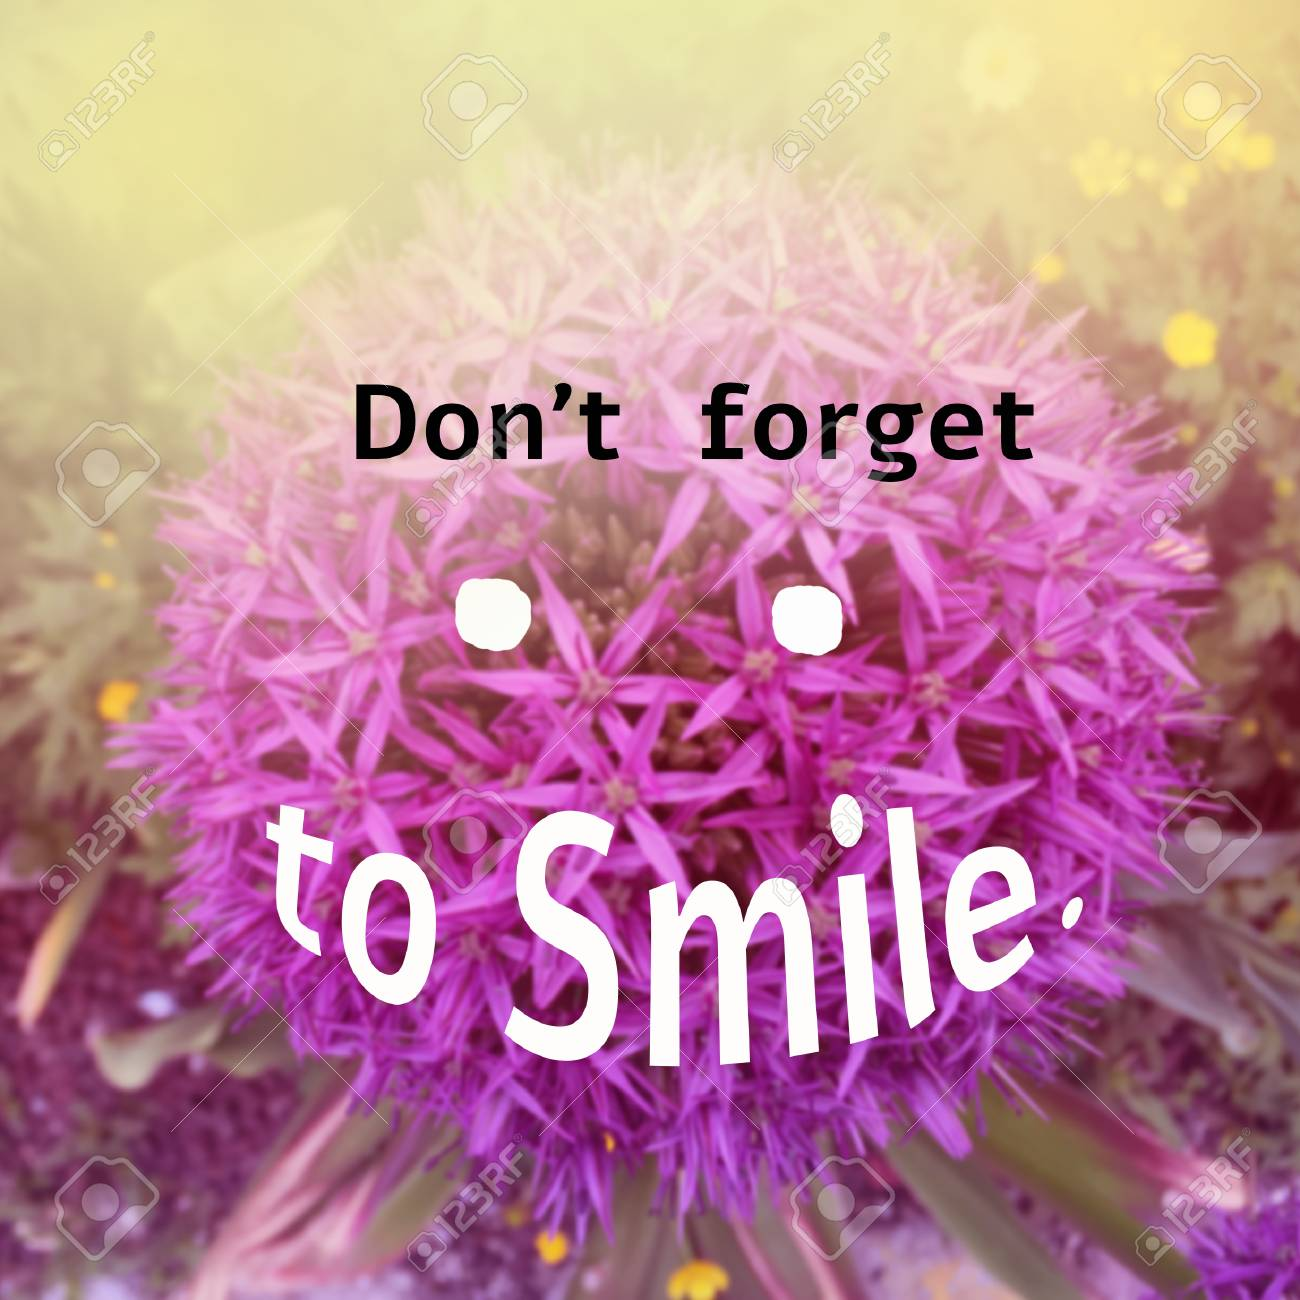 inspirational quote don t forget to smile on blurred flower